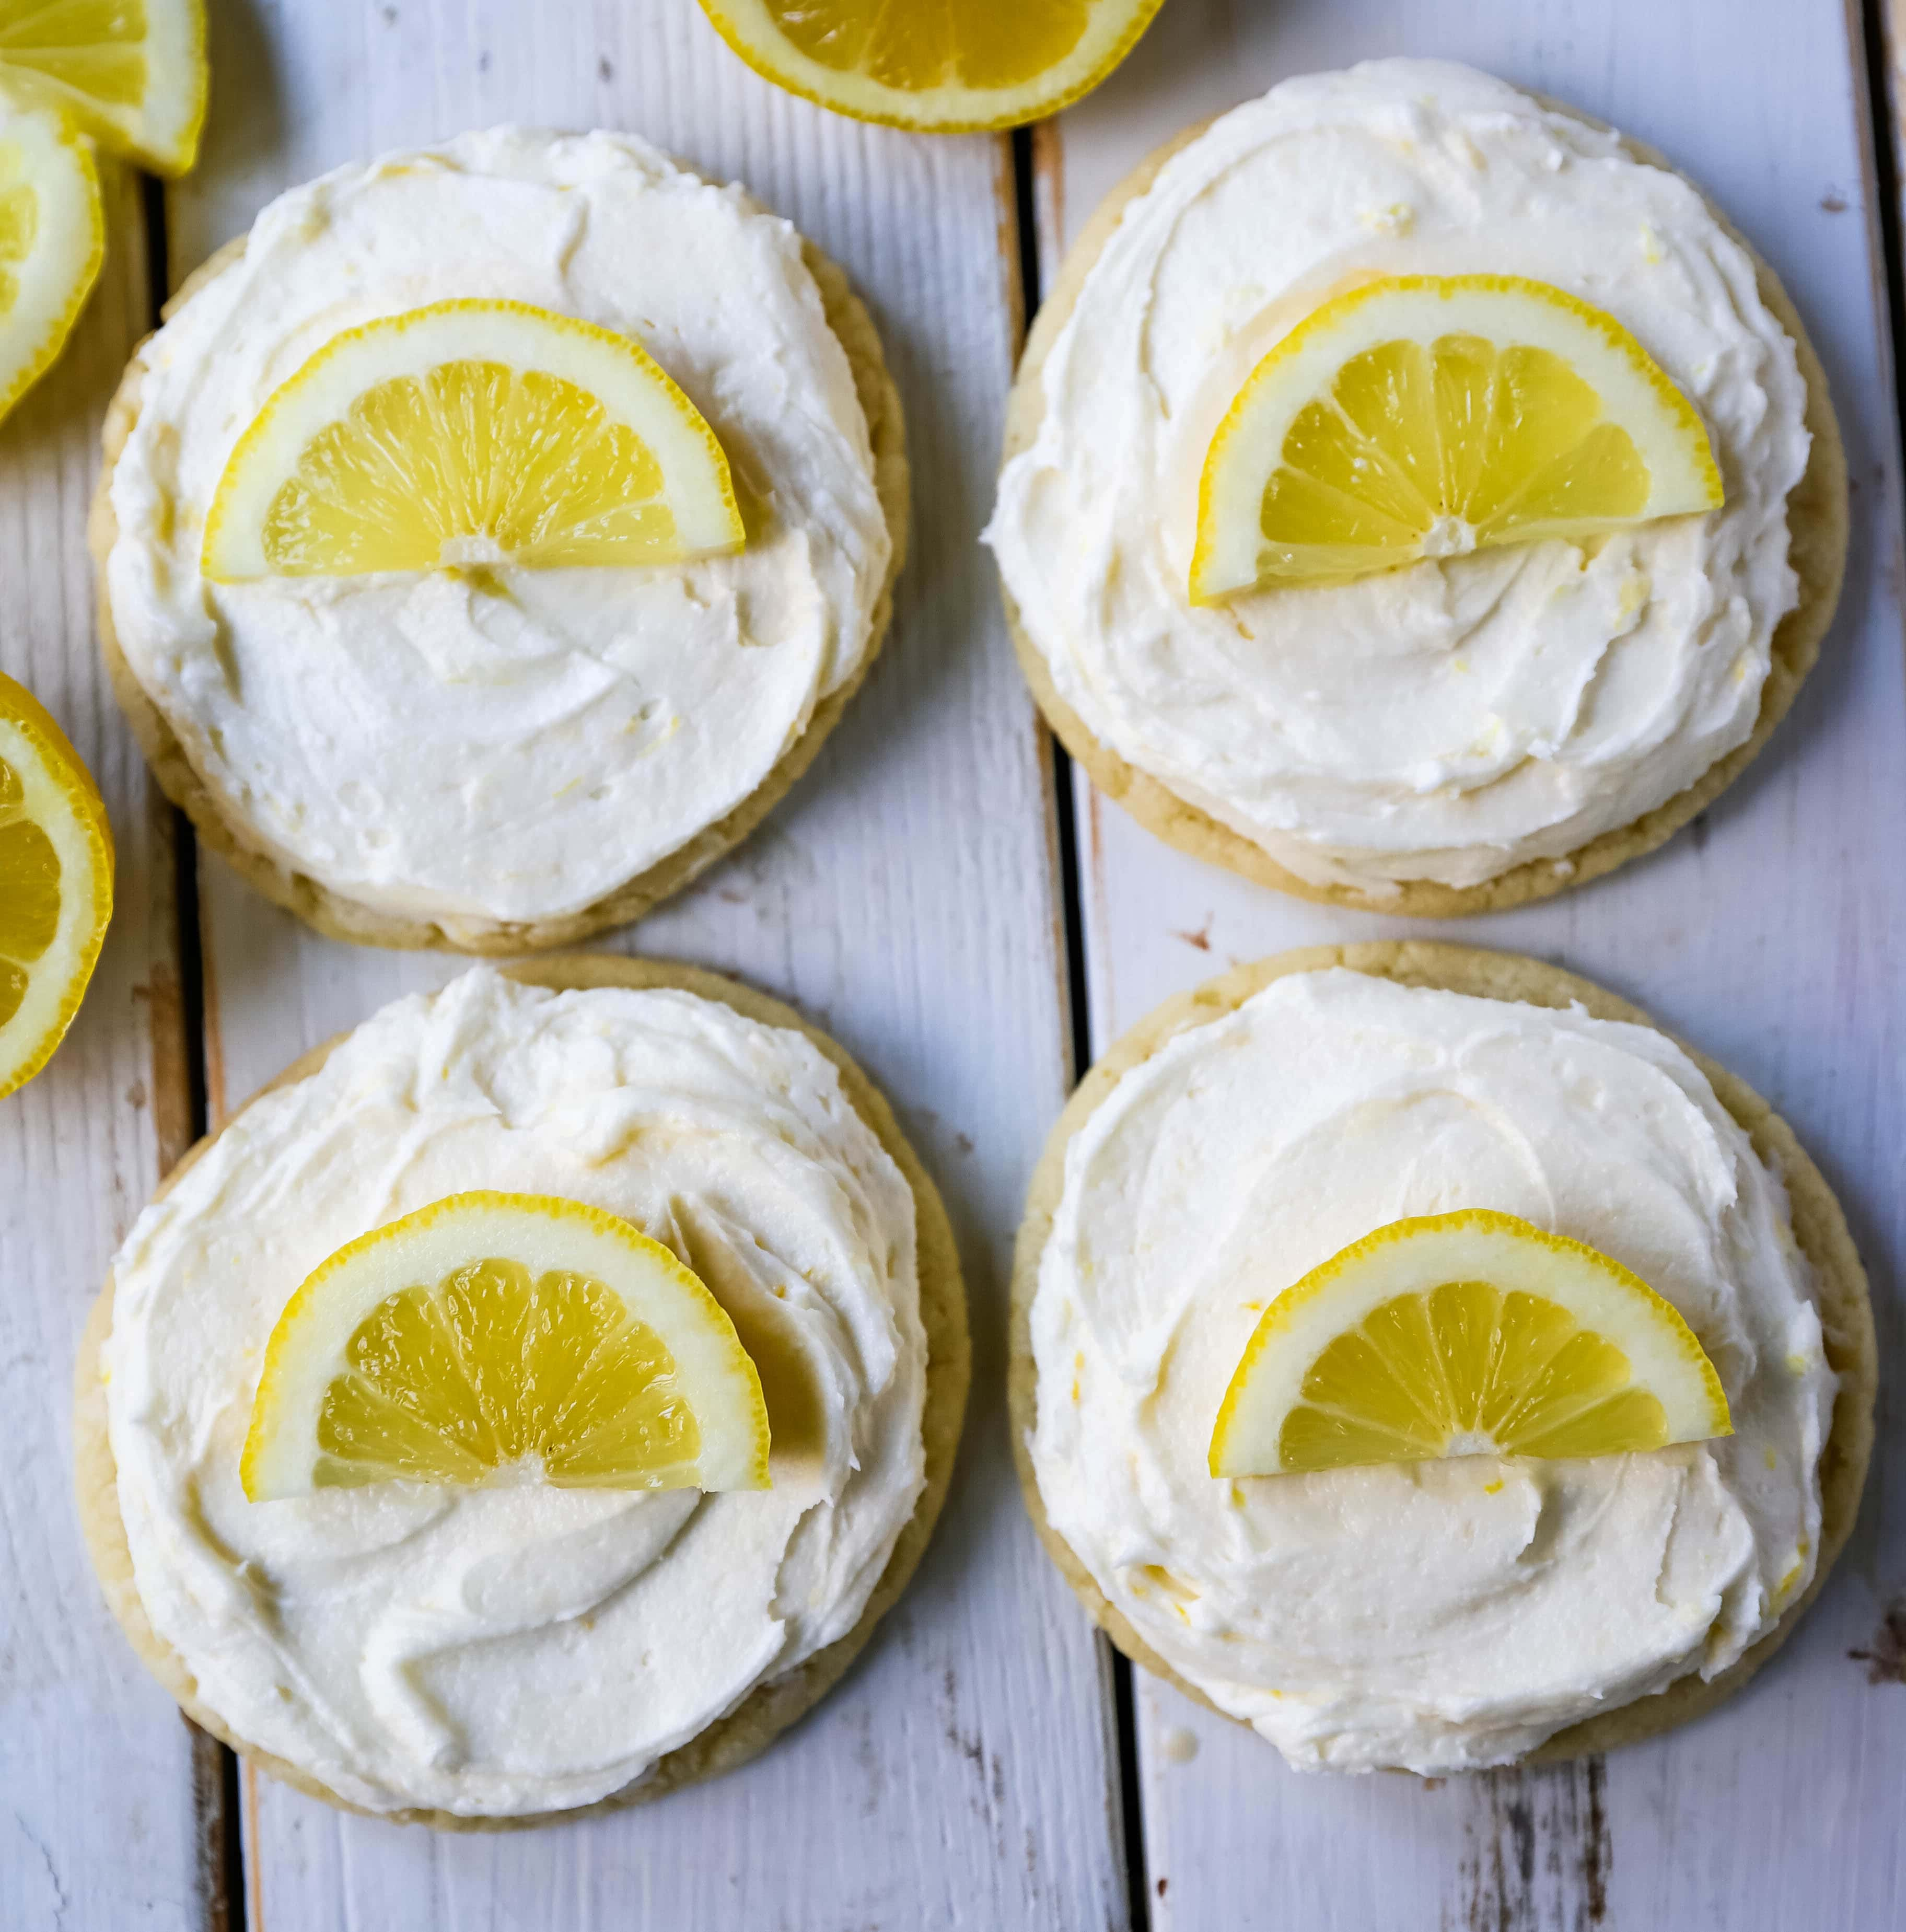 Frosted Lemon Cookies Soft chewy lemon cookies with fresh lemon cream cheese frosting. The perfect frosted lemon cookie recipe! www.modernhoney.com #lemon #lemoncookies #lemondesserts